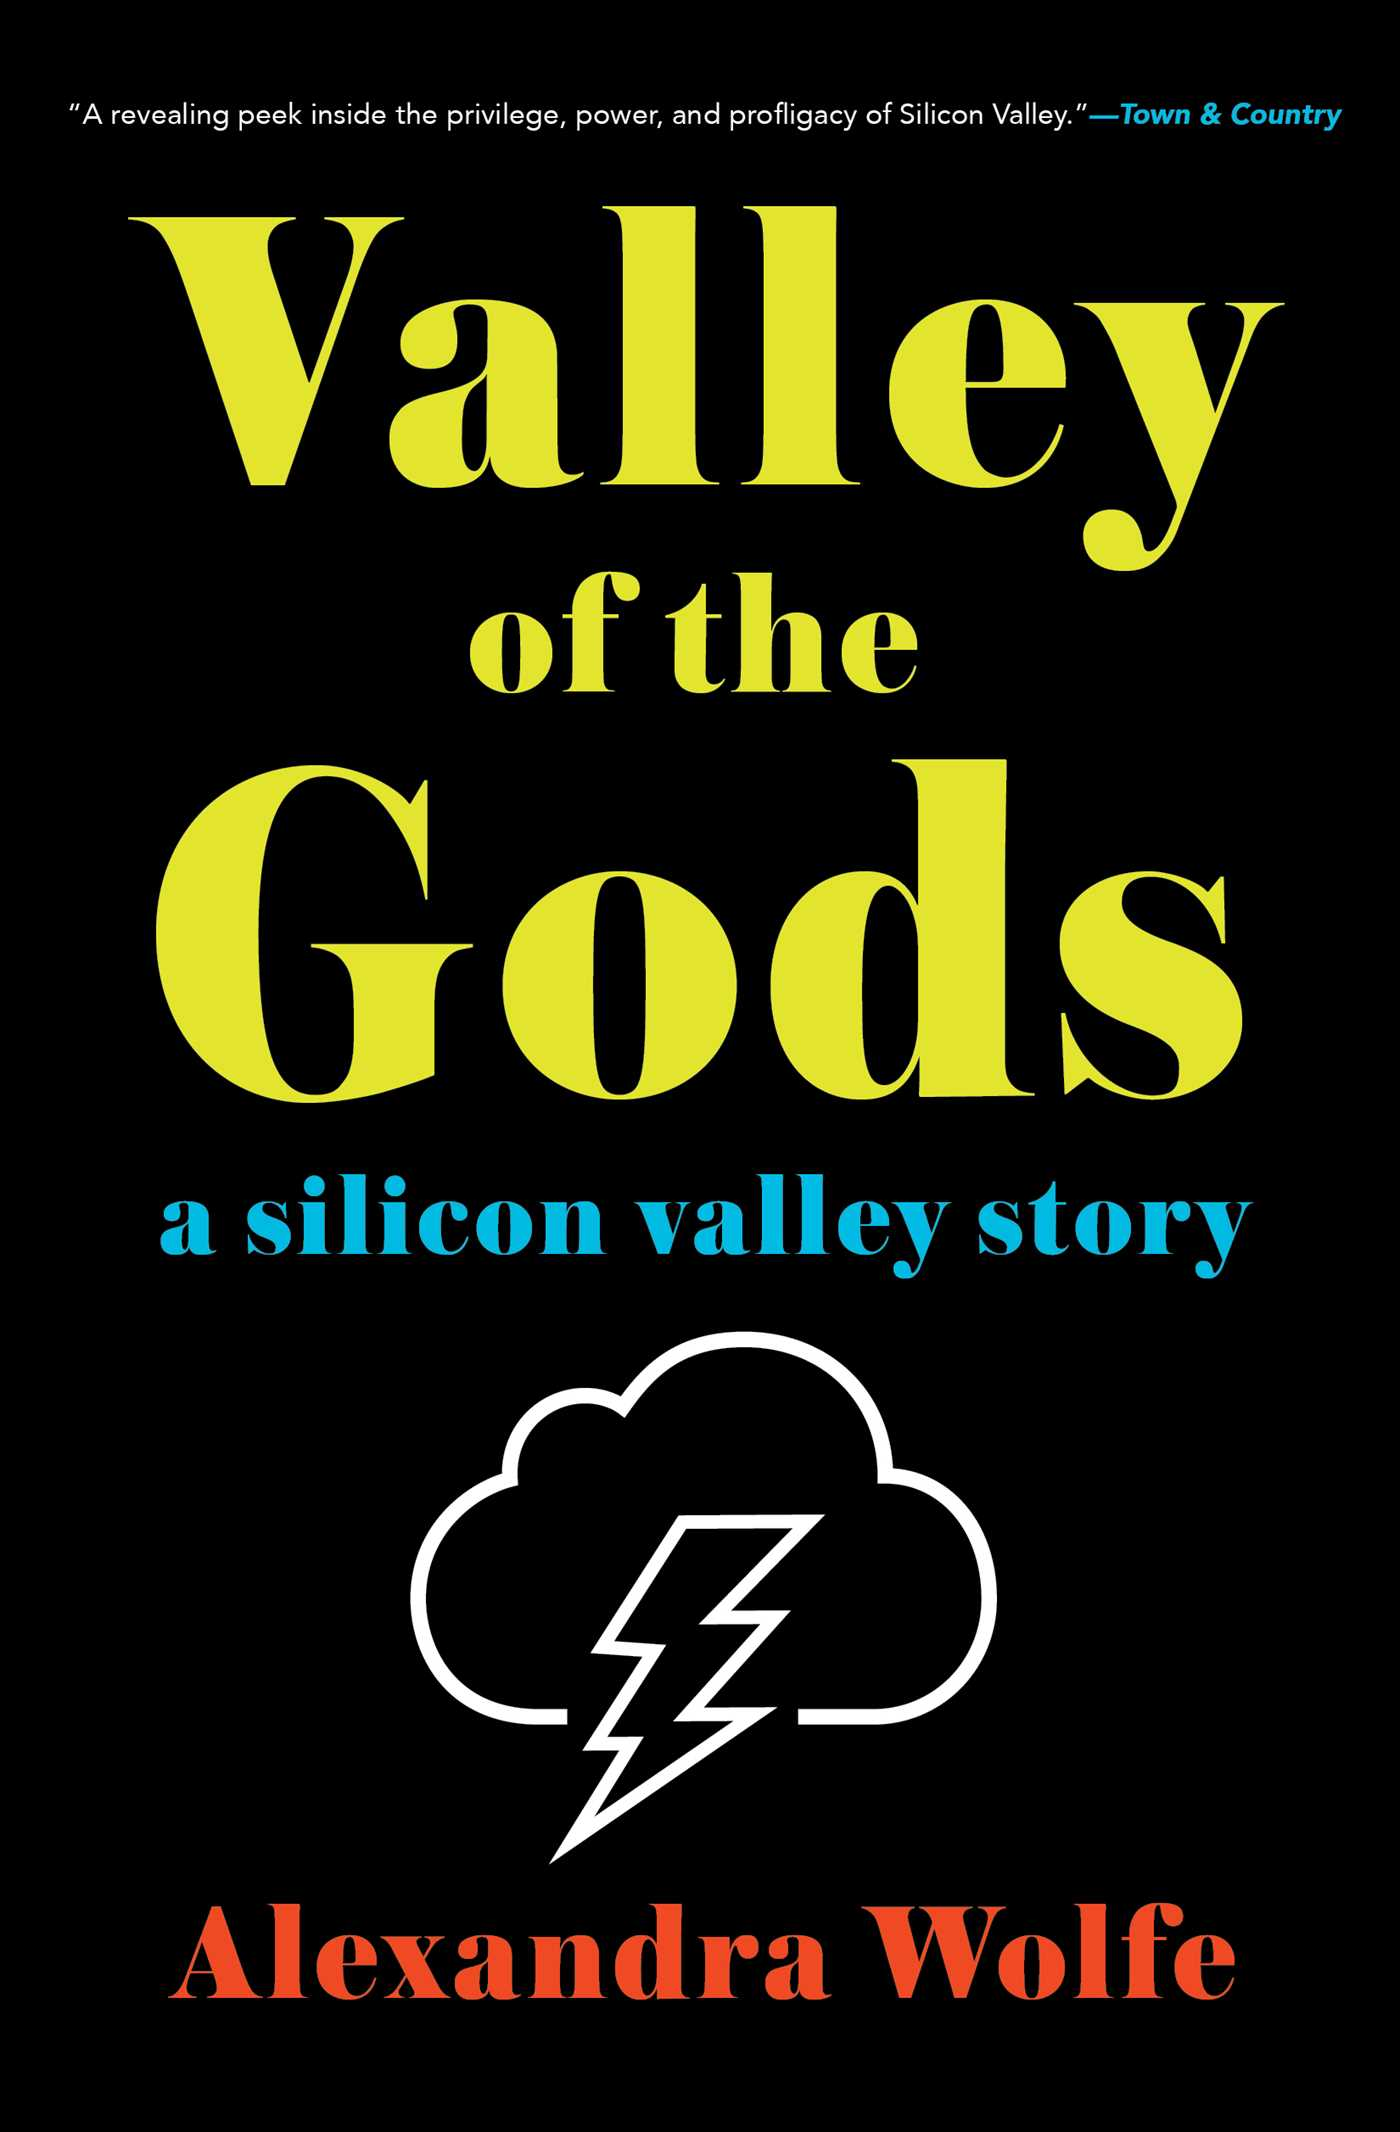 Book Cover Image (jpg): Valley of the Gods